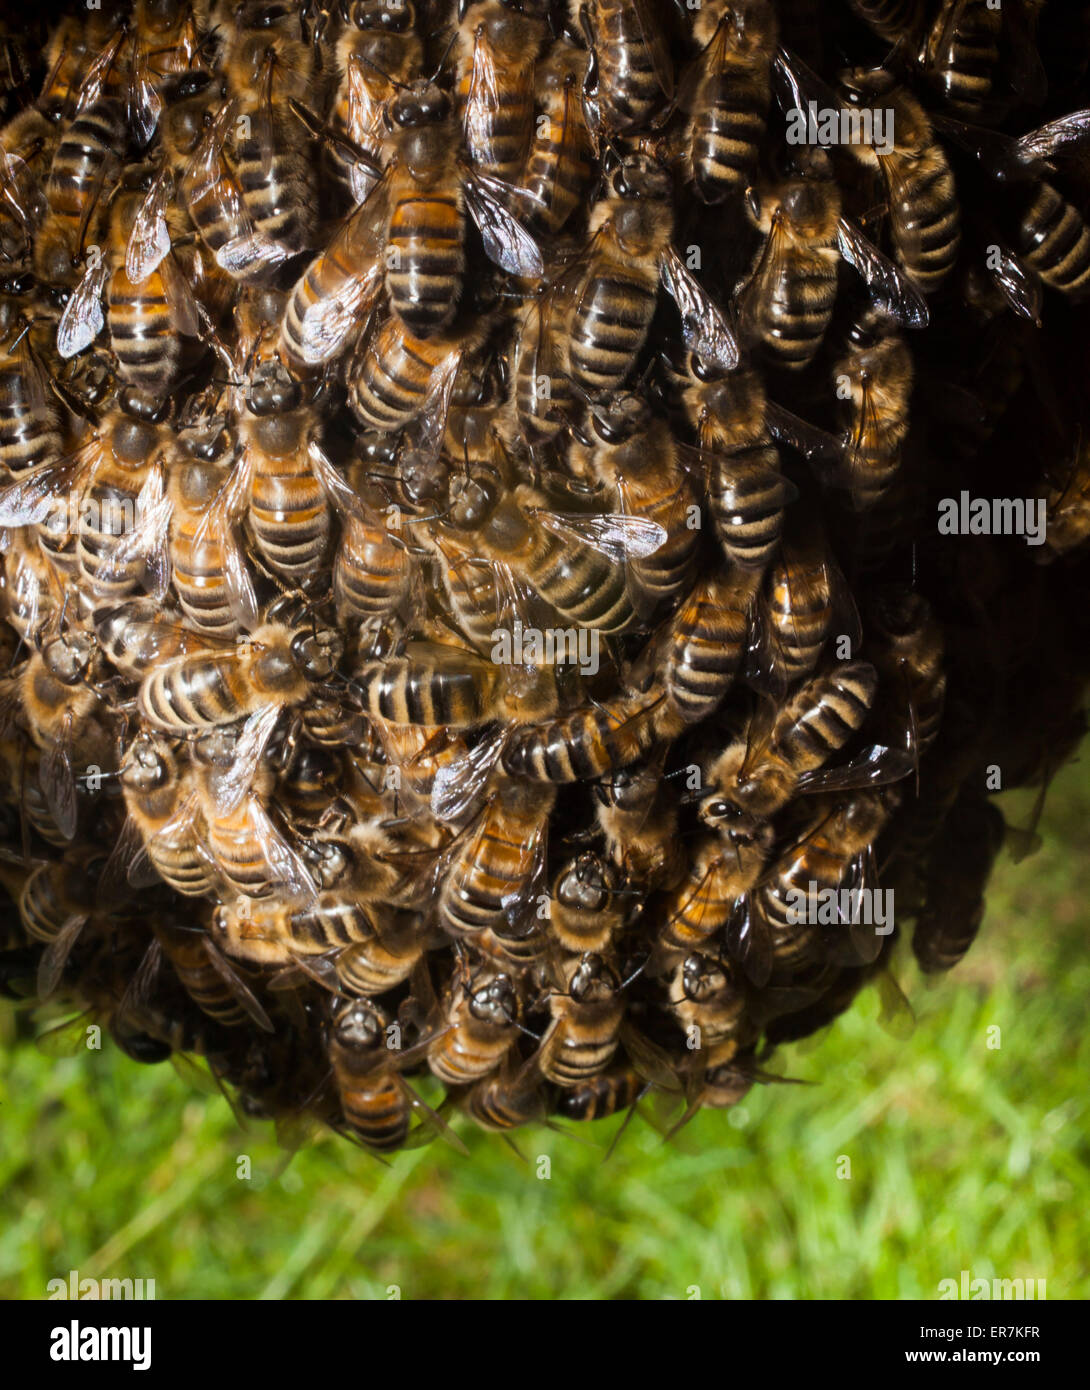 A swarm of honey bees,who have left the original colony, gather around their new queen bee. Later they will create - Stock Image